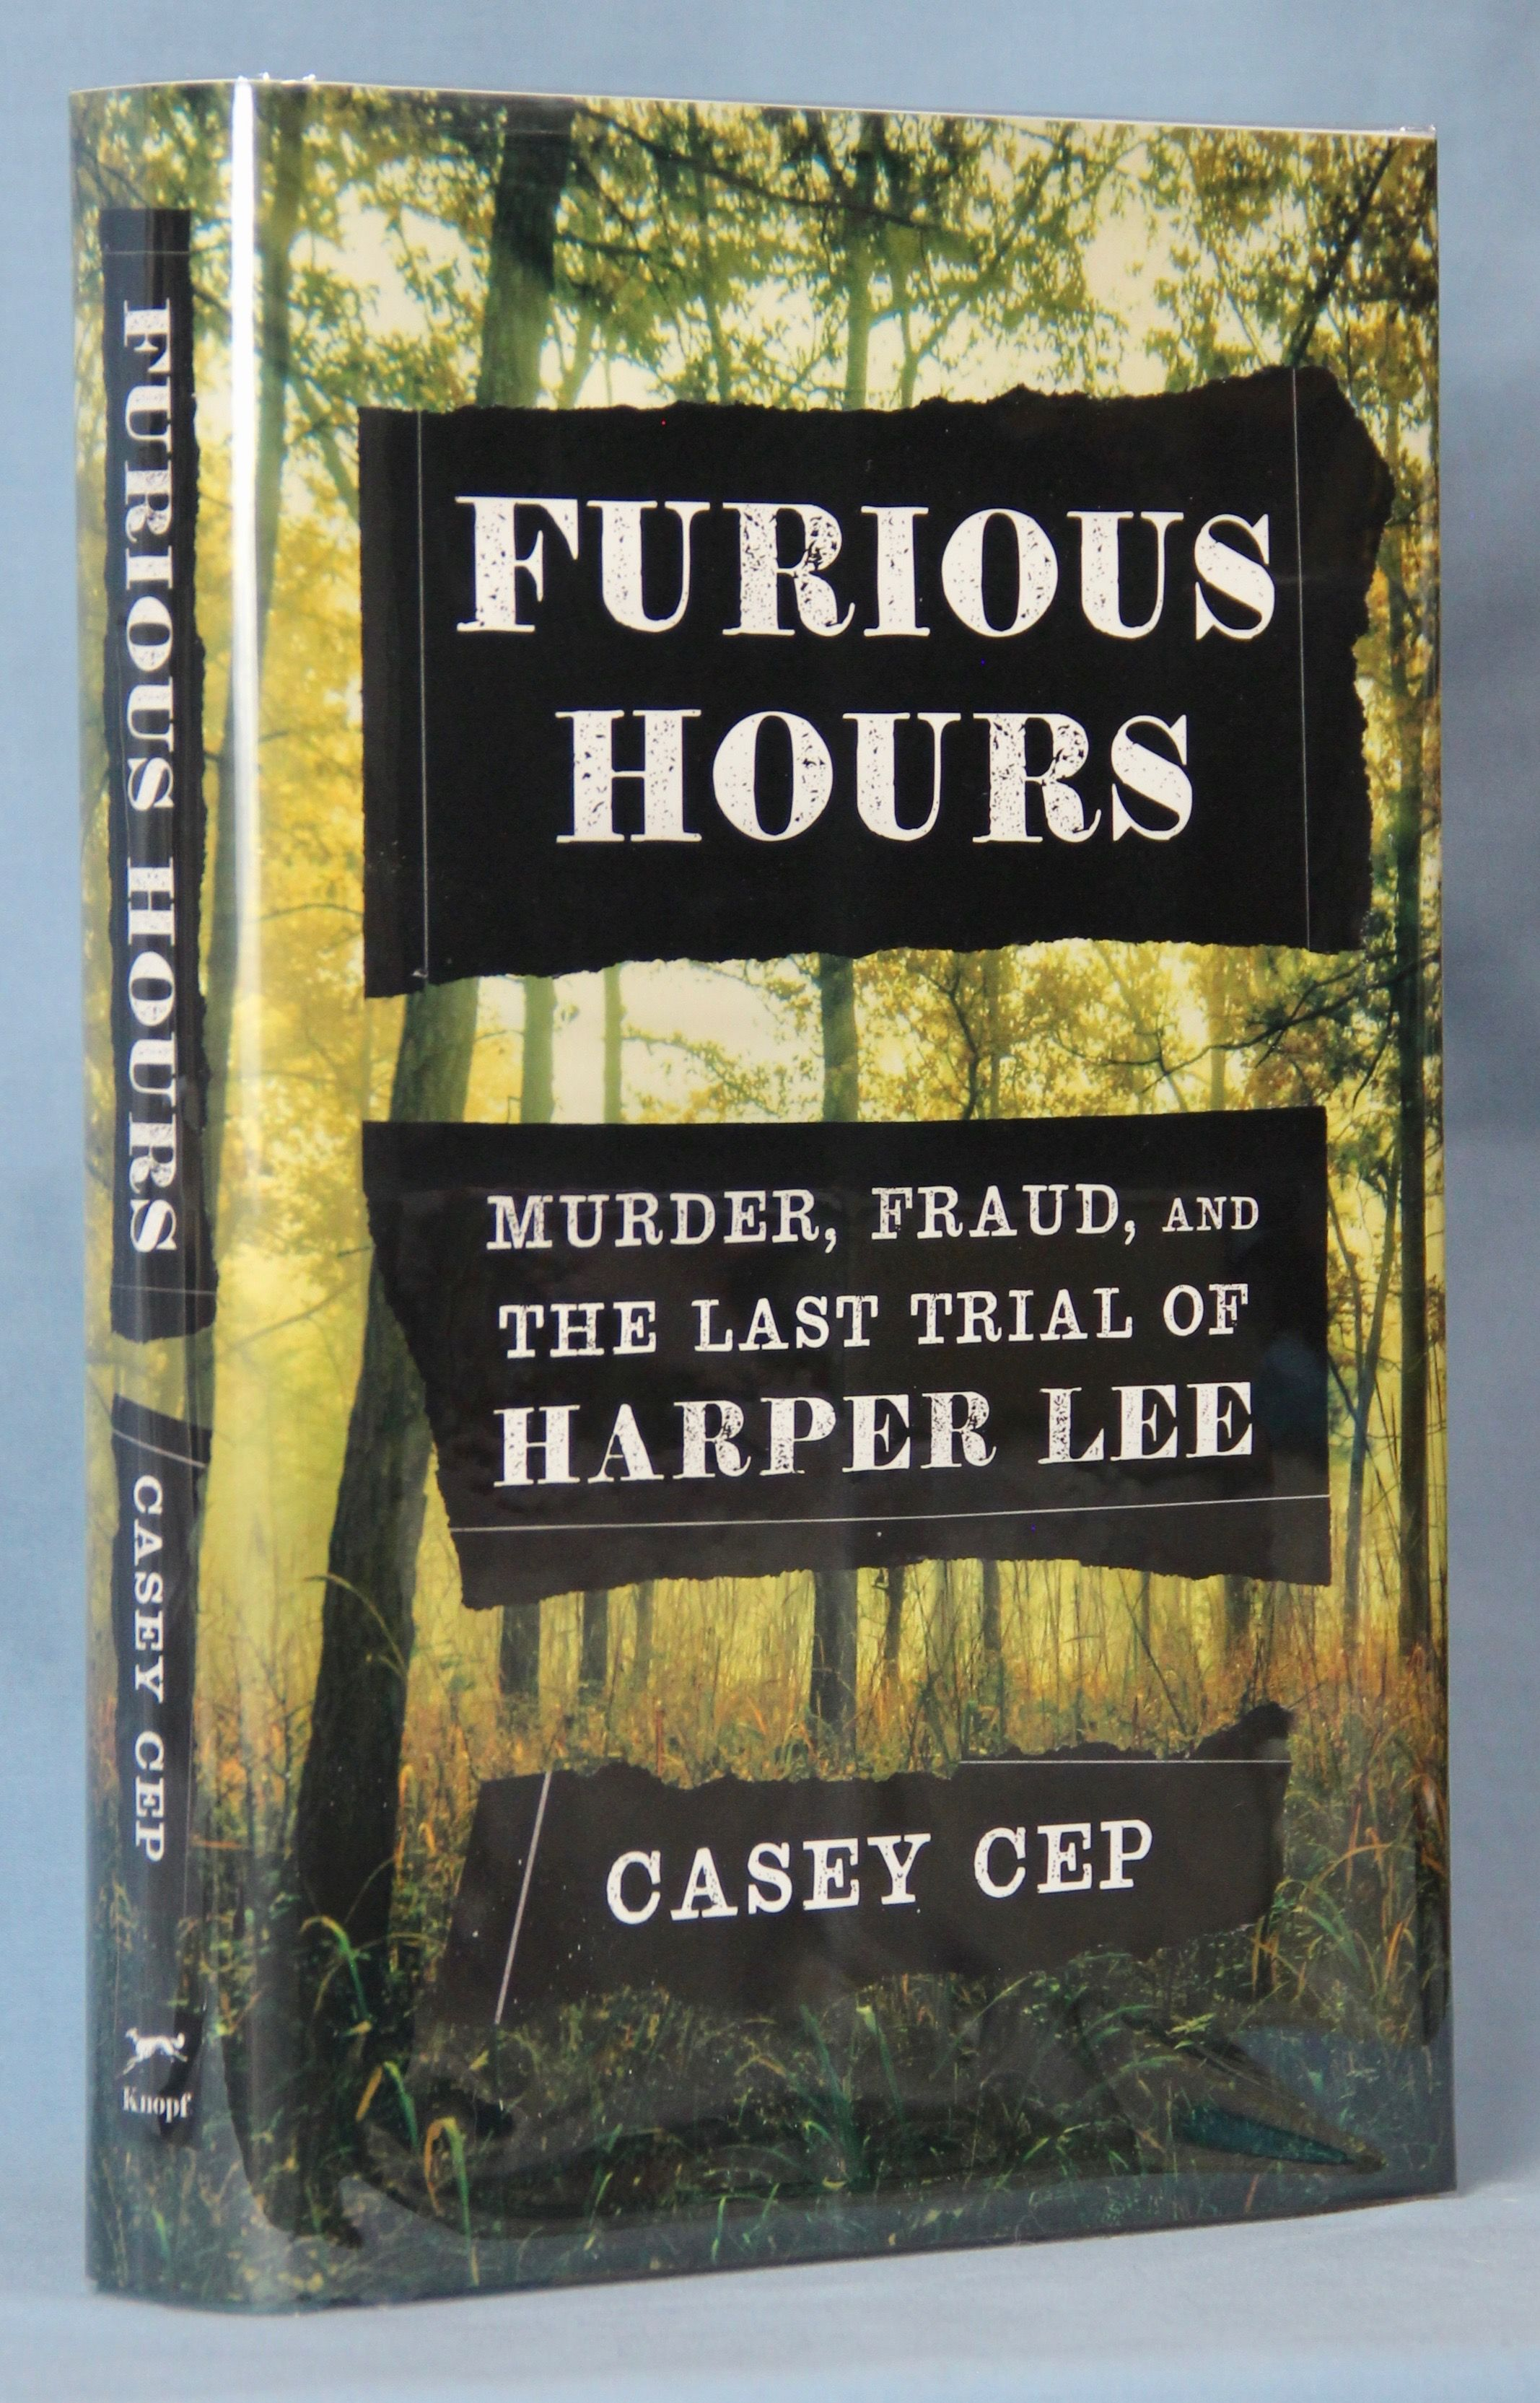 Image for Furious Hours: Murder, Fraud, and the Last Trial of Harper Lee (Signed)